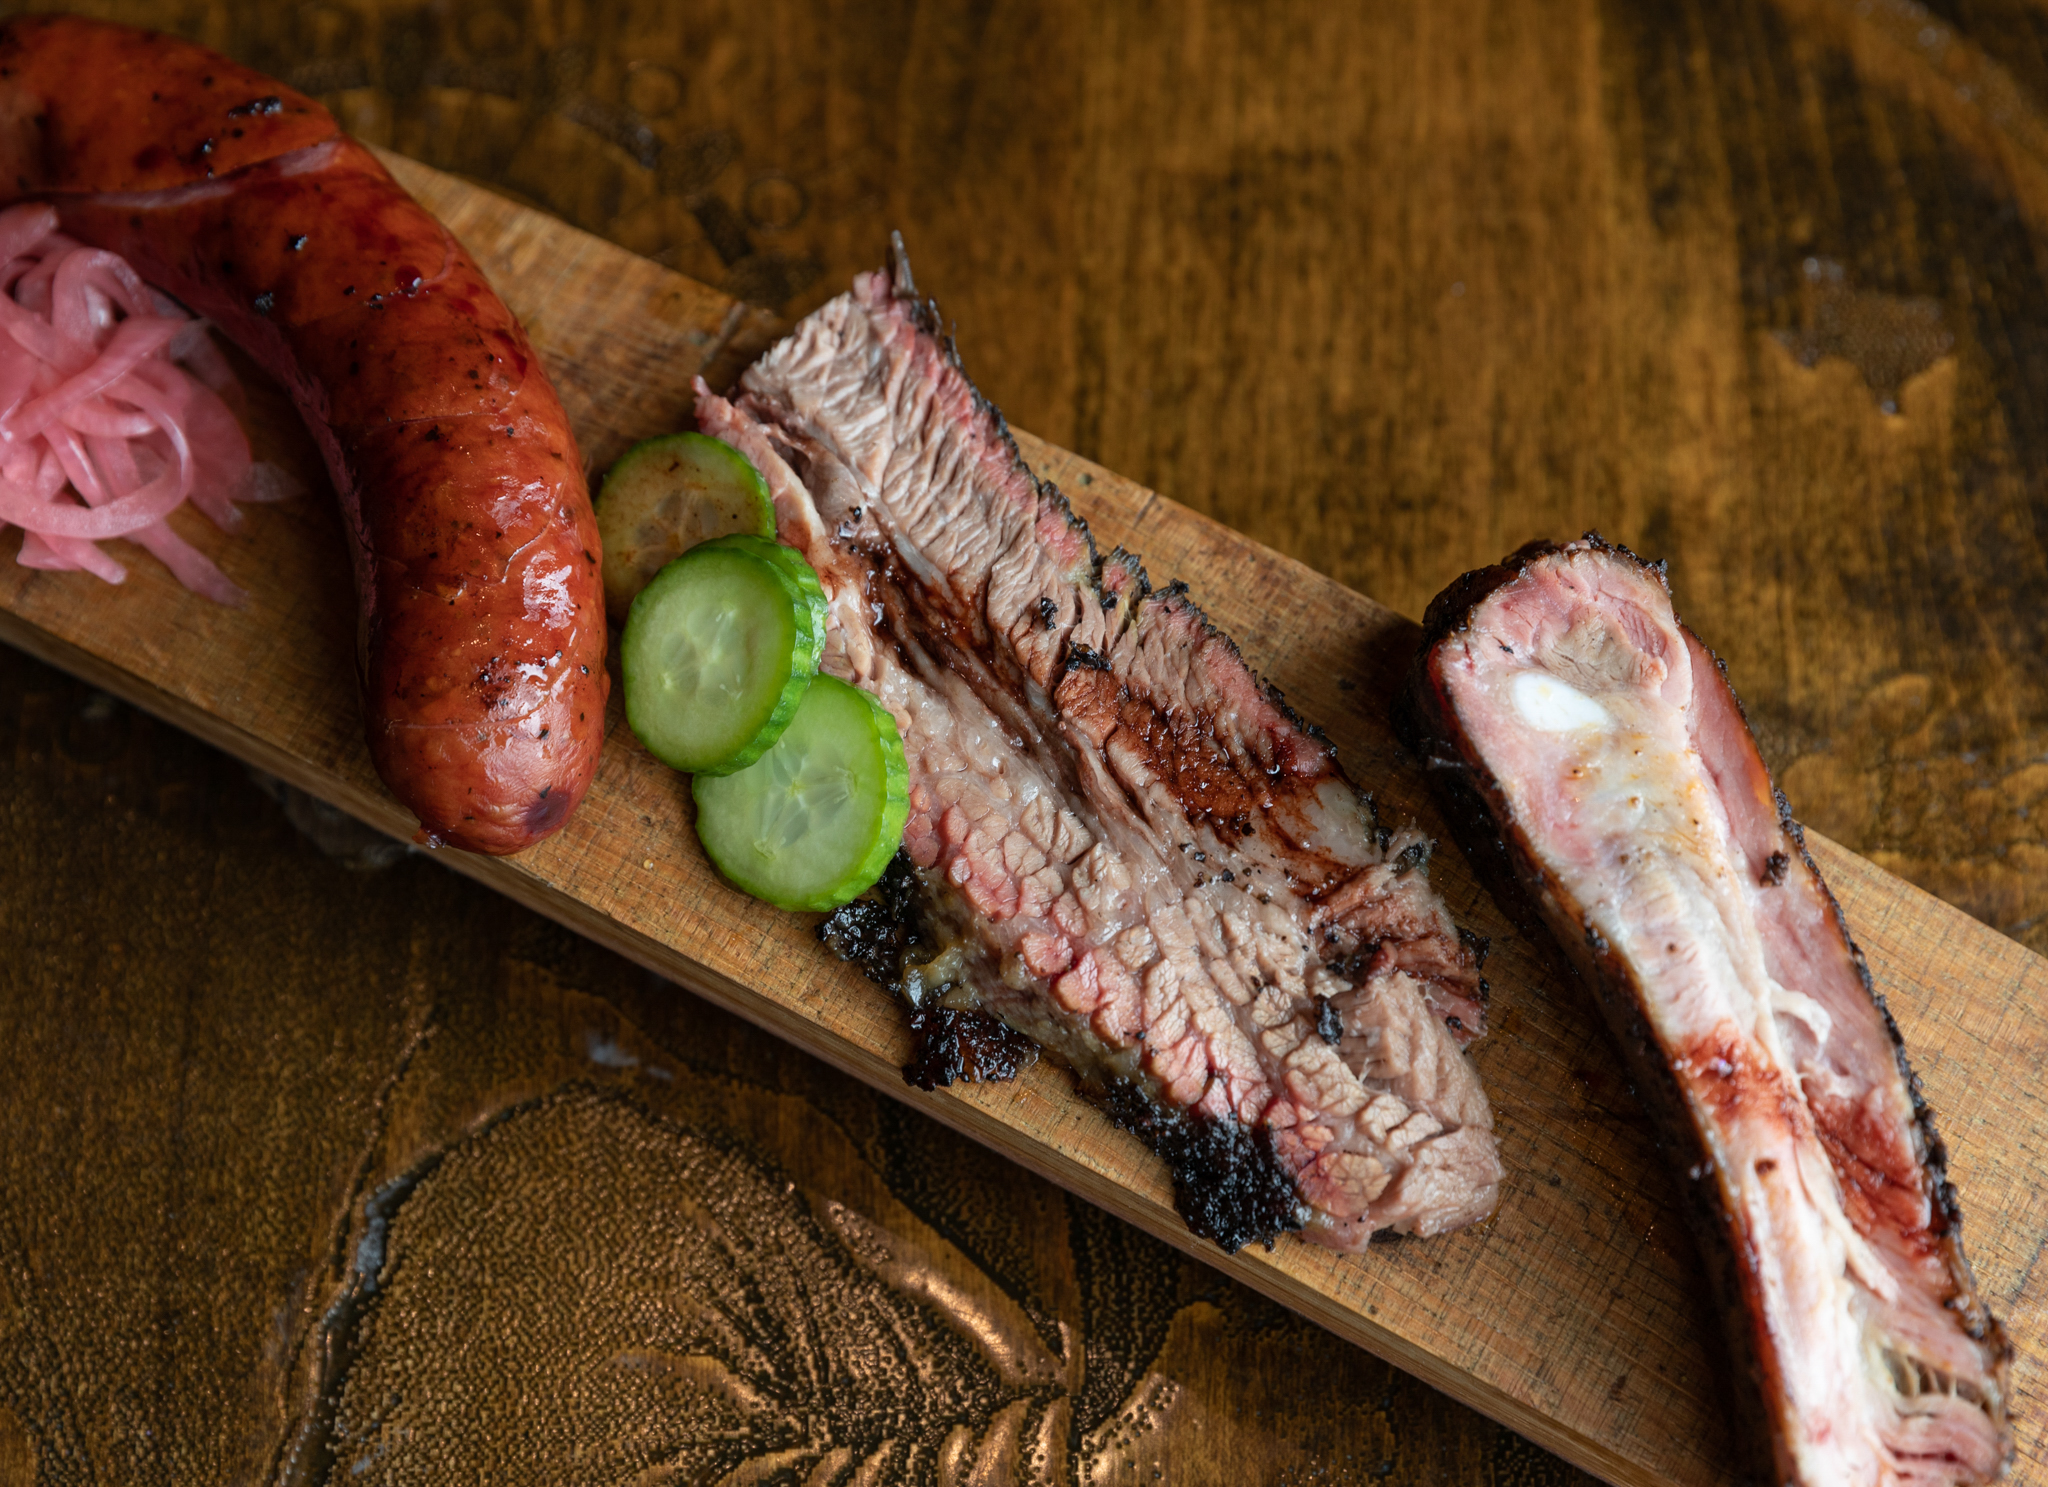 Who has Houston's most creative barbecue dish? Find out at the 2019 Houston BBQ Throwdown